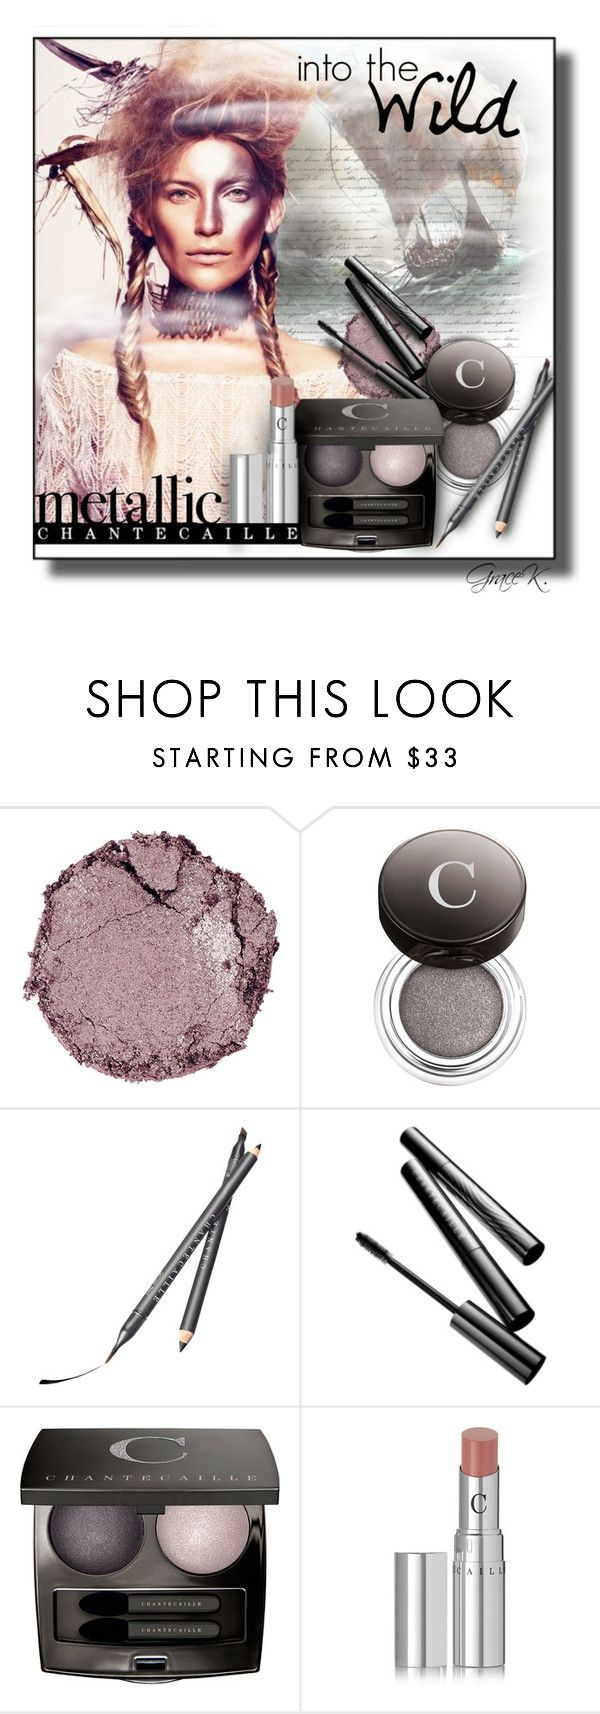 """""""Metallic Makeup"""" by gracekathryn ❤ liked on Polyvore featuring beauty, Once Upon a Time, Chantecaille, Beauty, metallic, beautyset and metallicmakeup"""